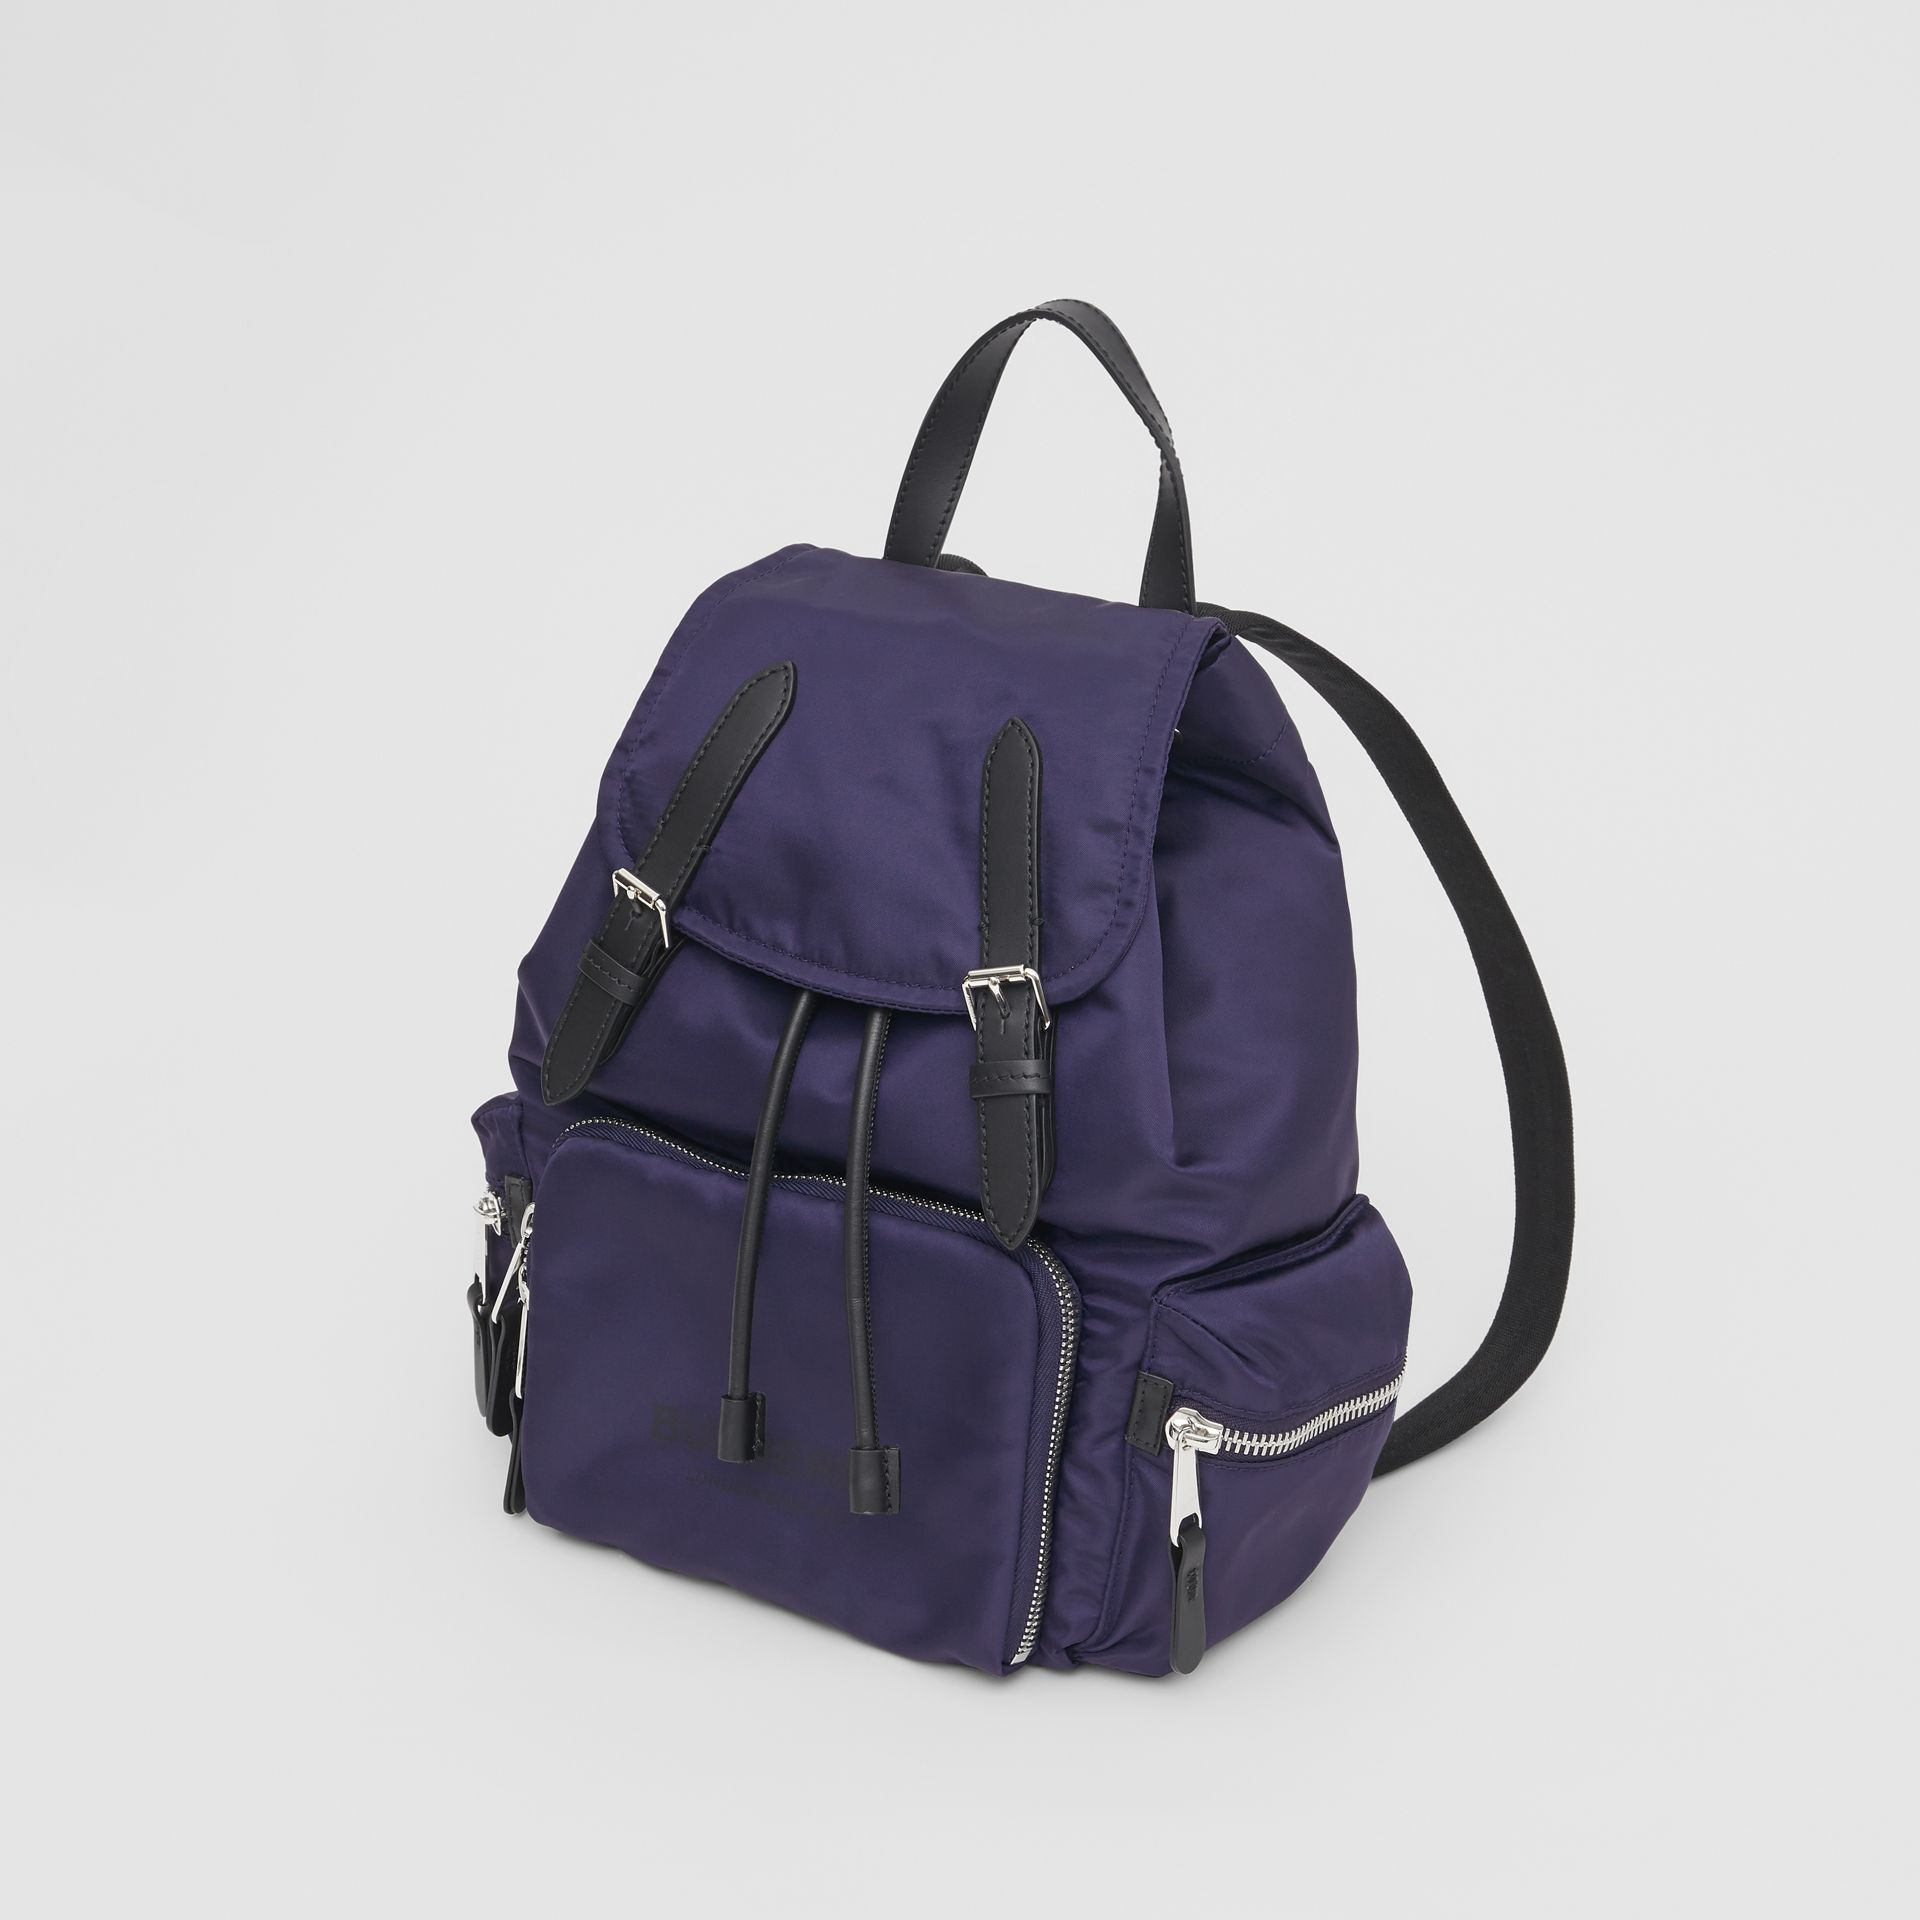 Sac The Rucksack moyen en nylon avec logo (Bleu Marine) - Femme | Burberry - photo de la galerie 3